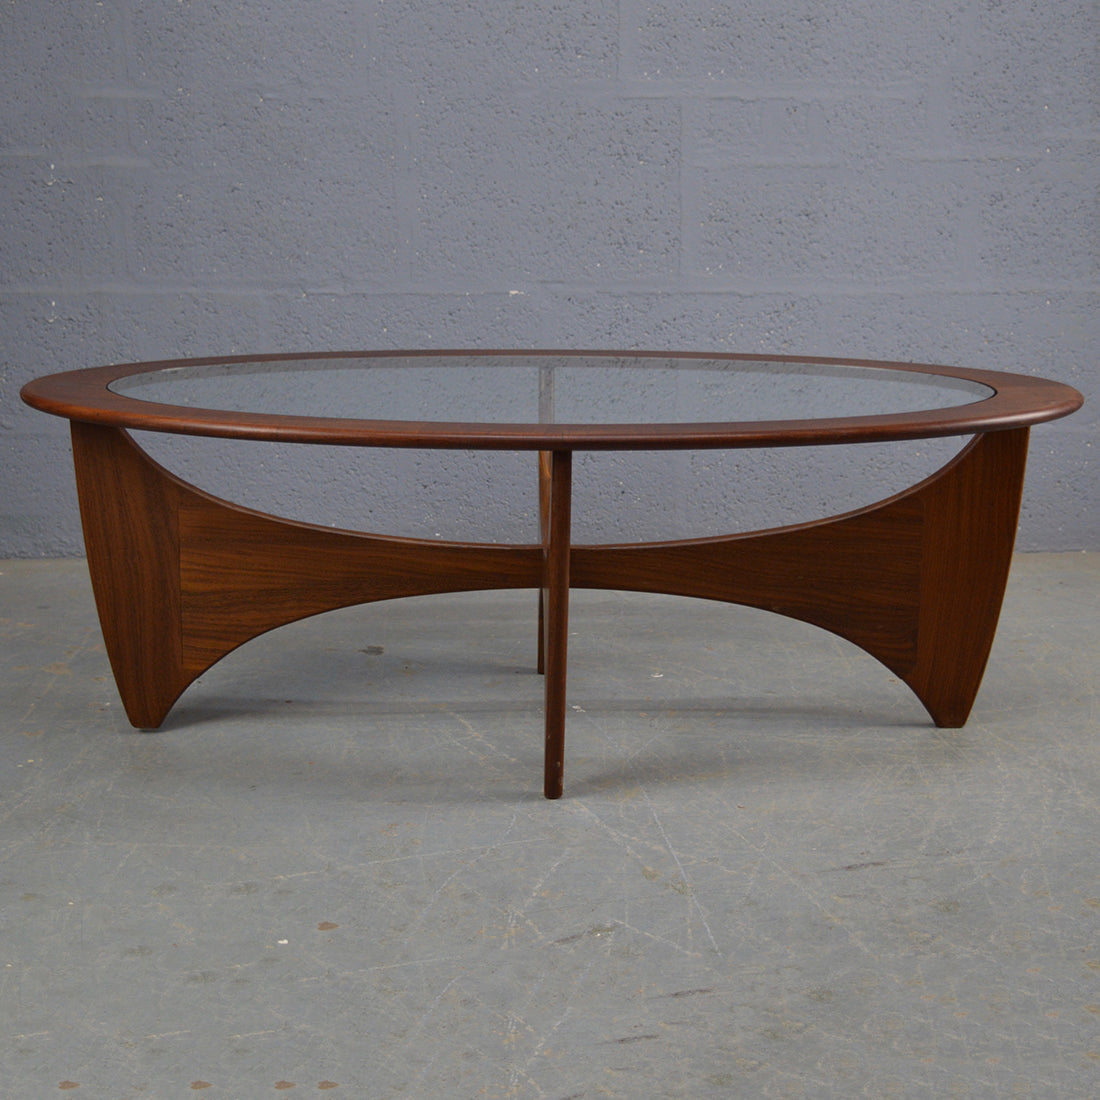 Astro Coffee Table.Mid Century Oval Teak Astro Coffee Table By G Plan